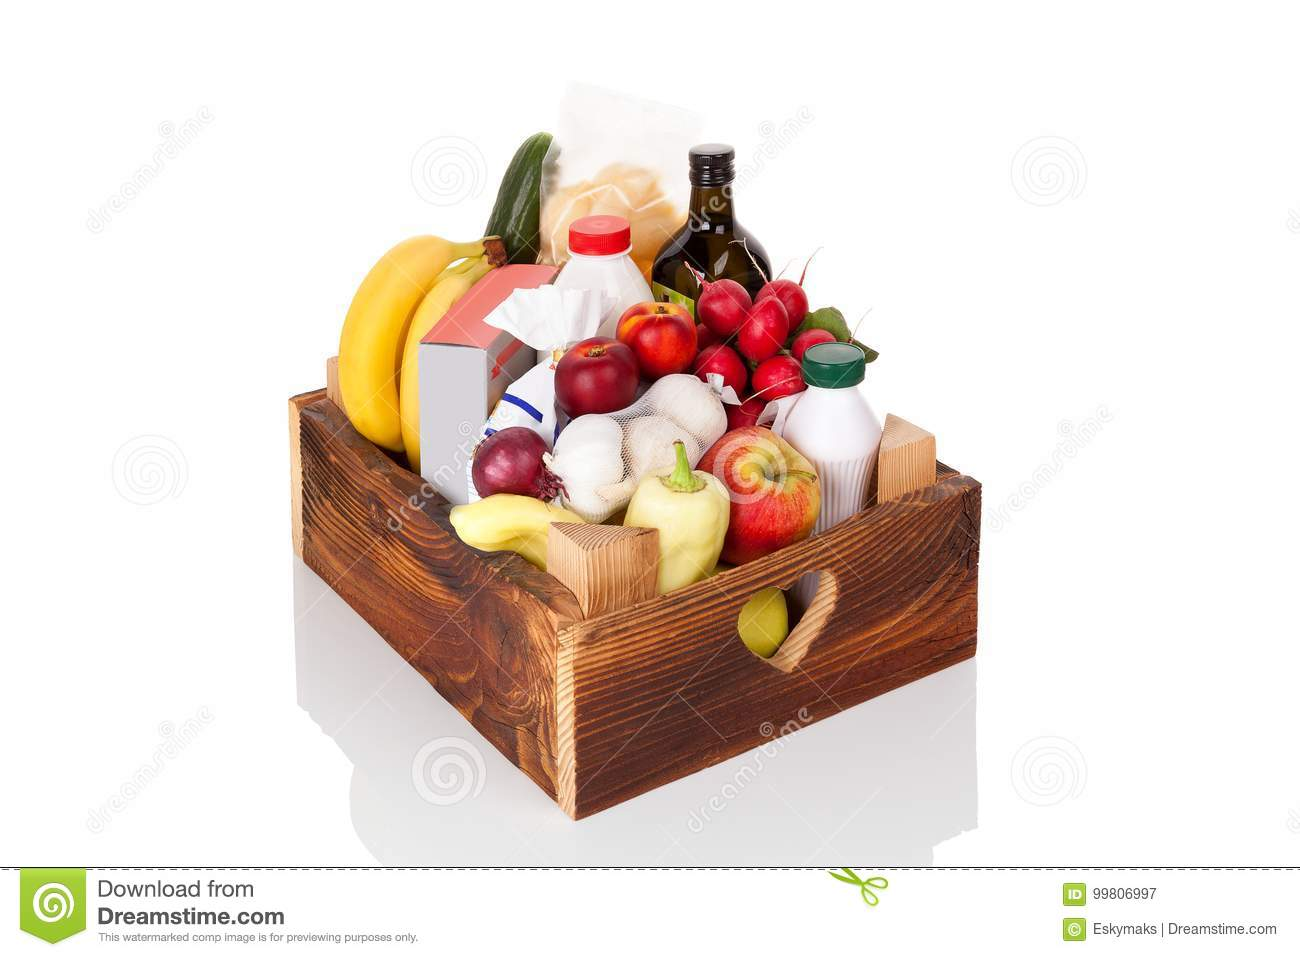 Wooden Crate Of Grocery Food And Drink From Store Stock Image